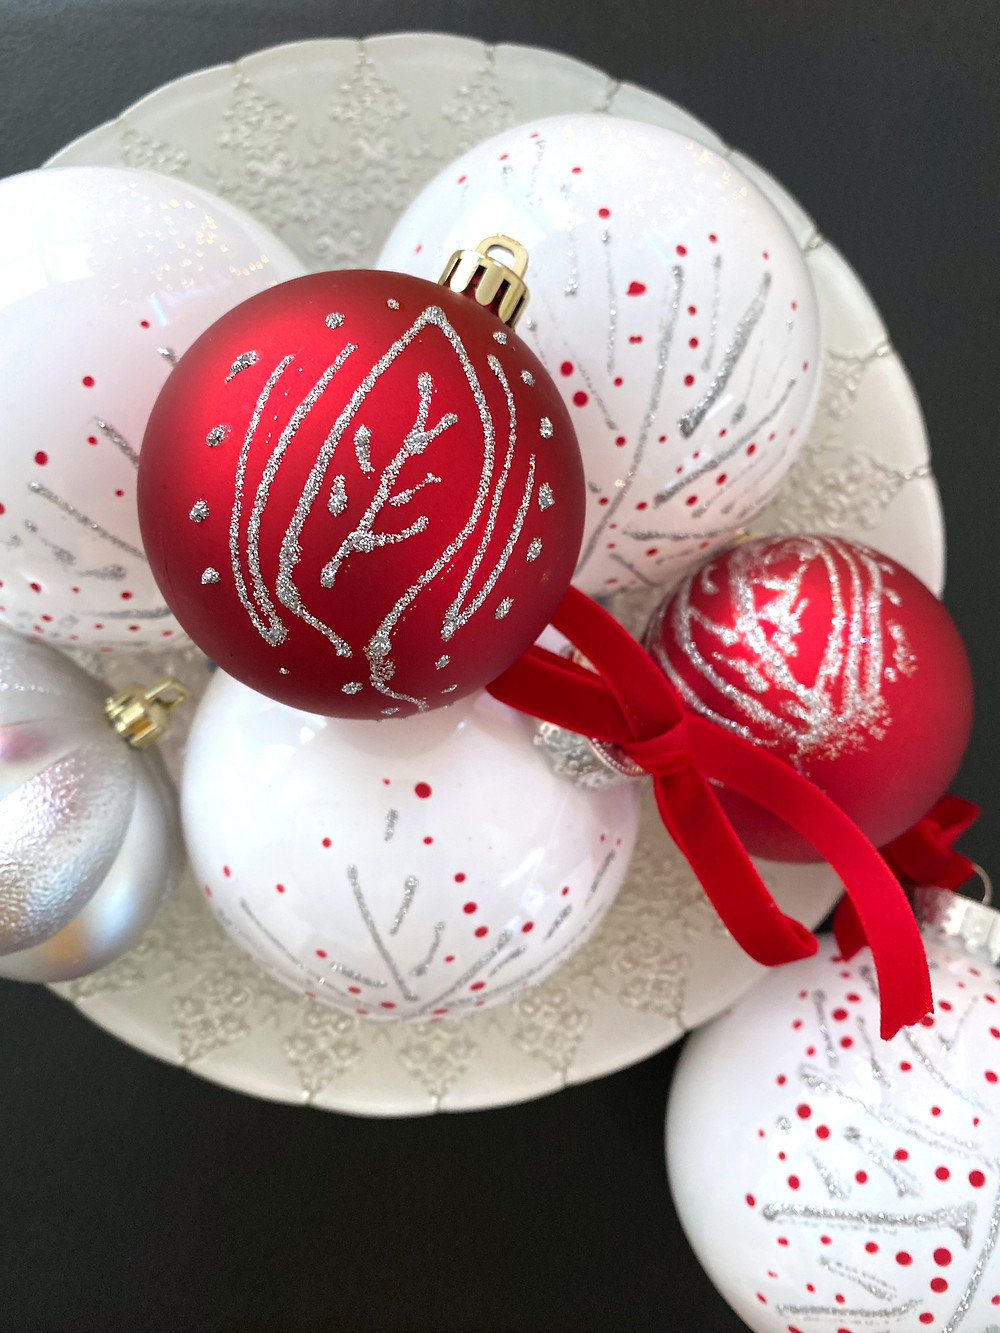 A simple and easy DIY Christmas Ornament. DIY these beautiful Nordic Ornaments to add the perfect touch of whimsy to your holiday decor. #holidaydecor #DIYornament #christmasornament